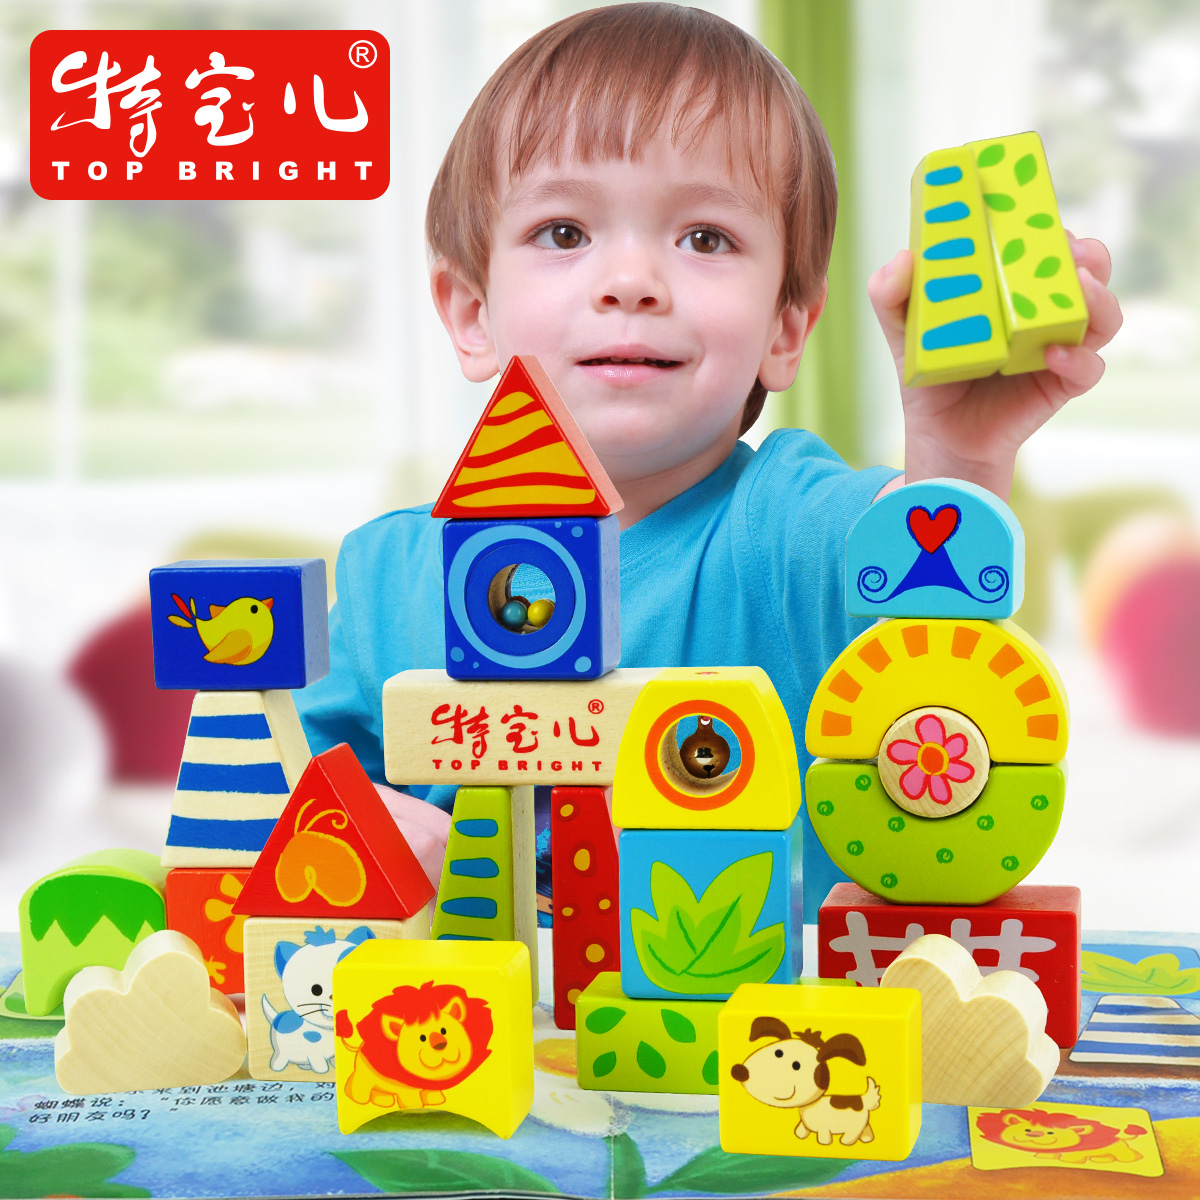 Special boa baby blocks baby blocks wooden chunk of enlightenment thanmonolingualsat years of age children toy building blocks